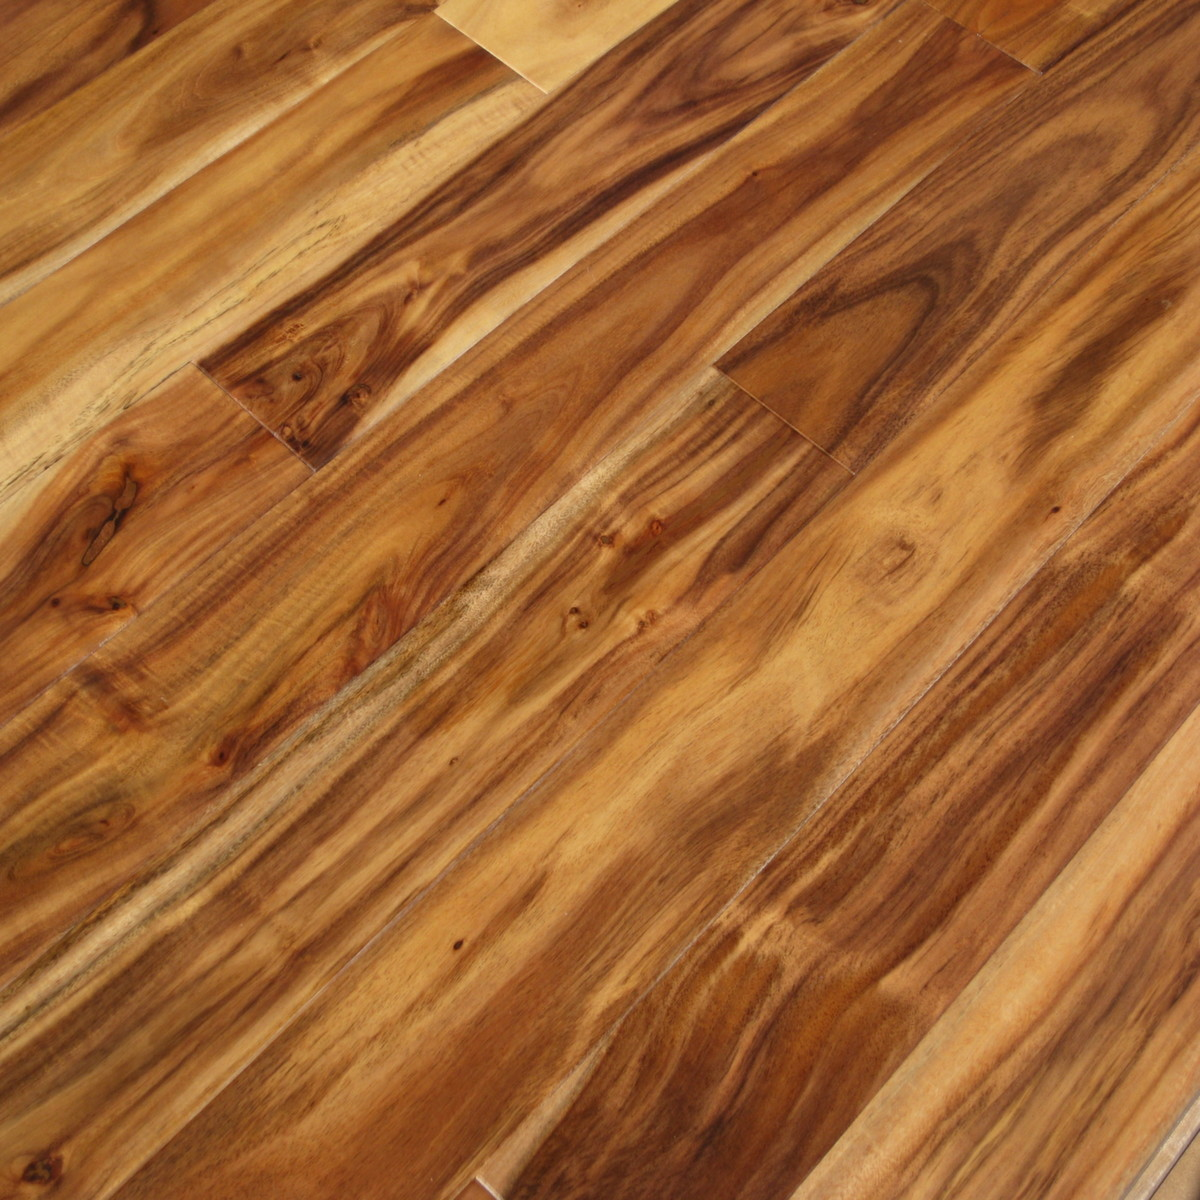 Acacia Natural Hand Scraped Hardwood Flooring Unique